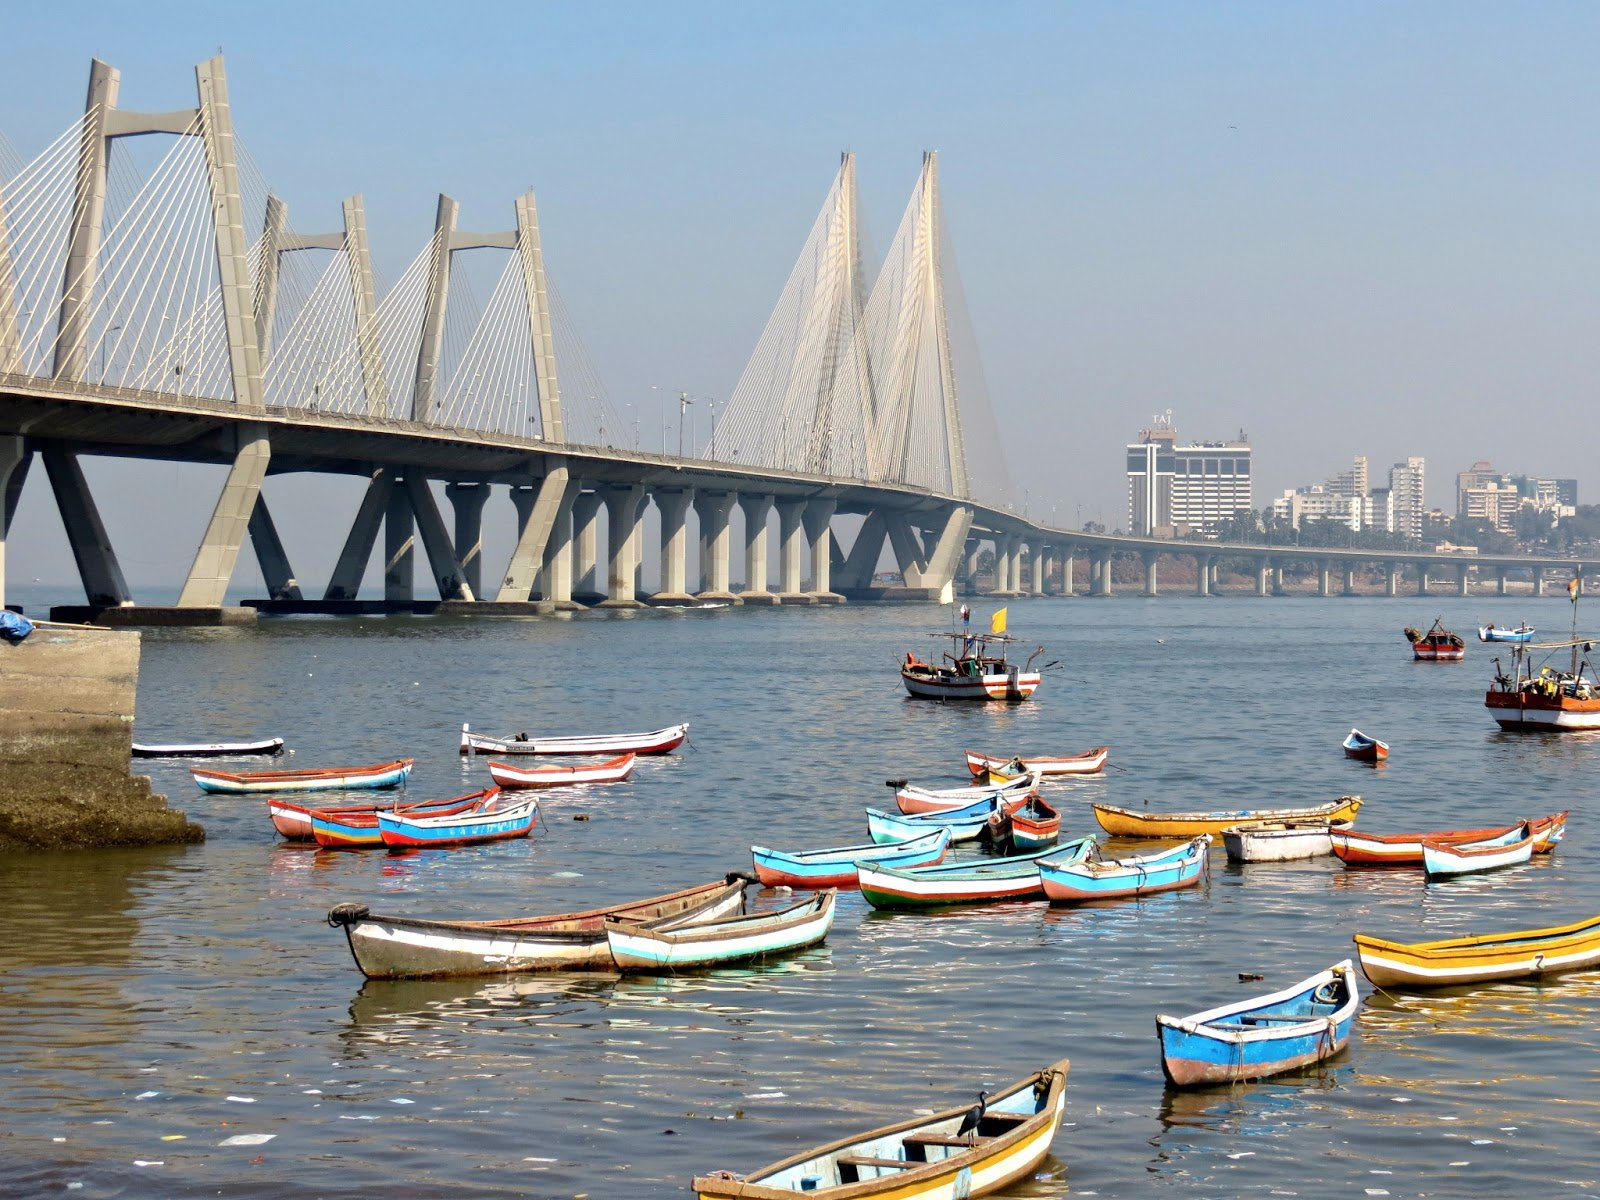 Mumbai fishing boats